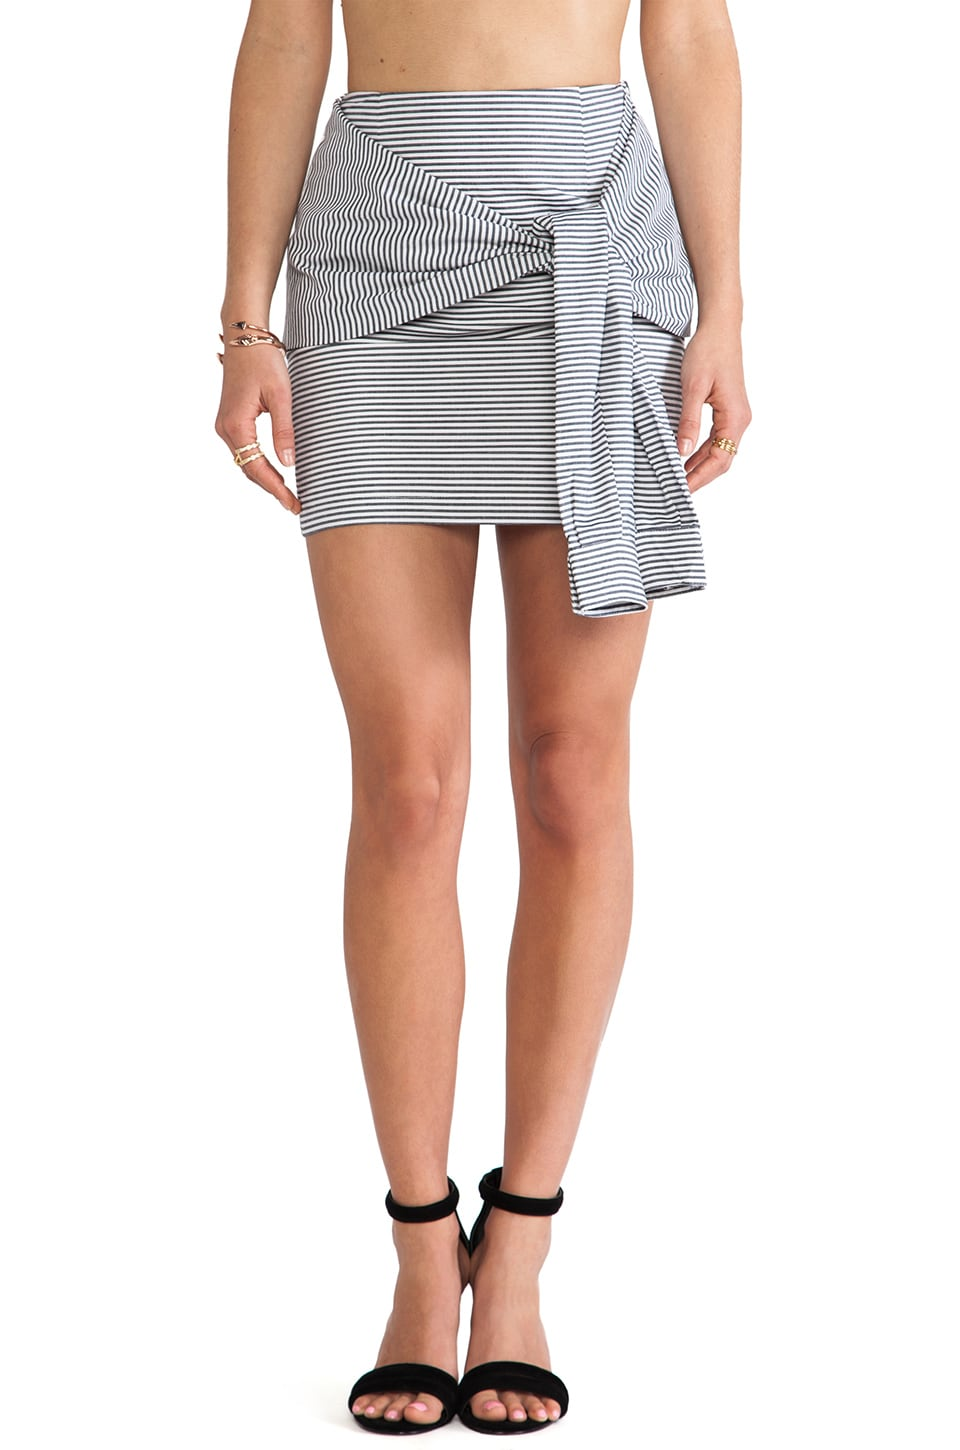 J.O.A. Two-Fer Striped Skirt in Navy Stripe